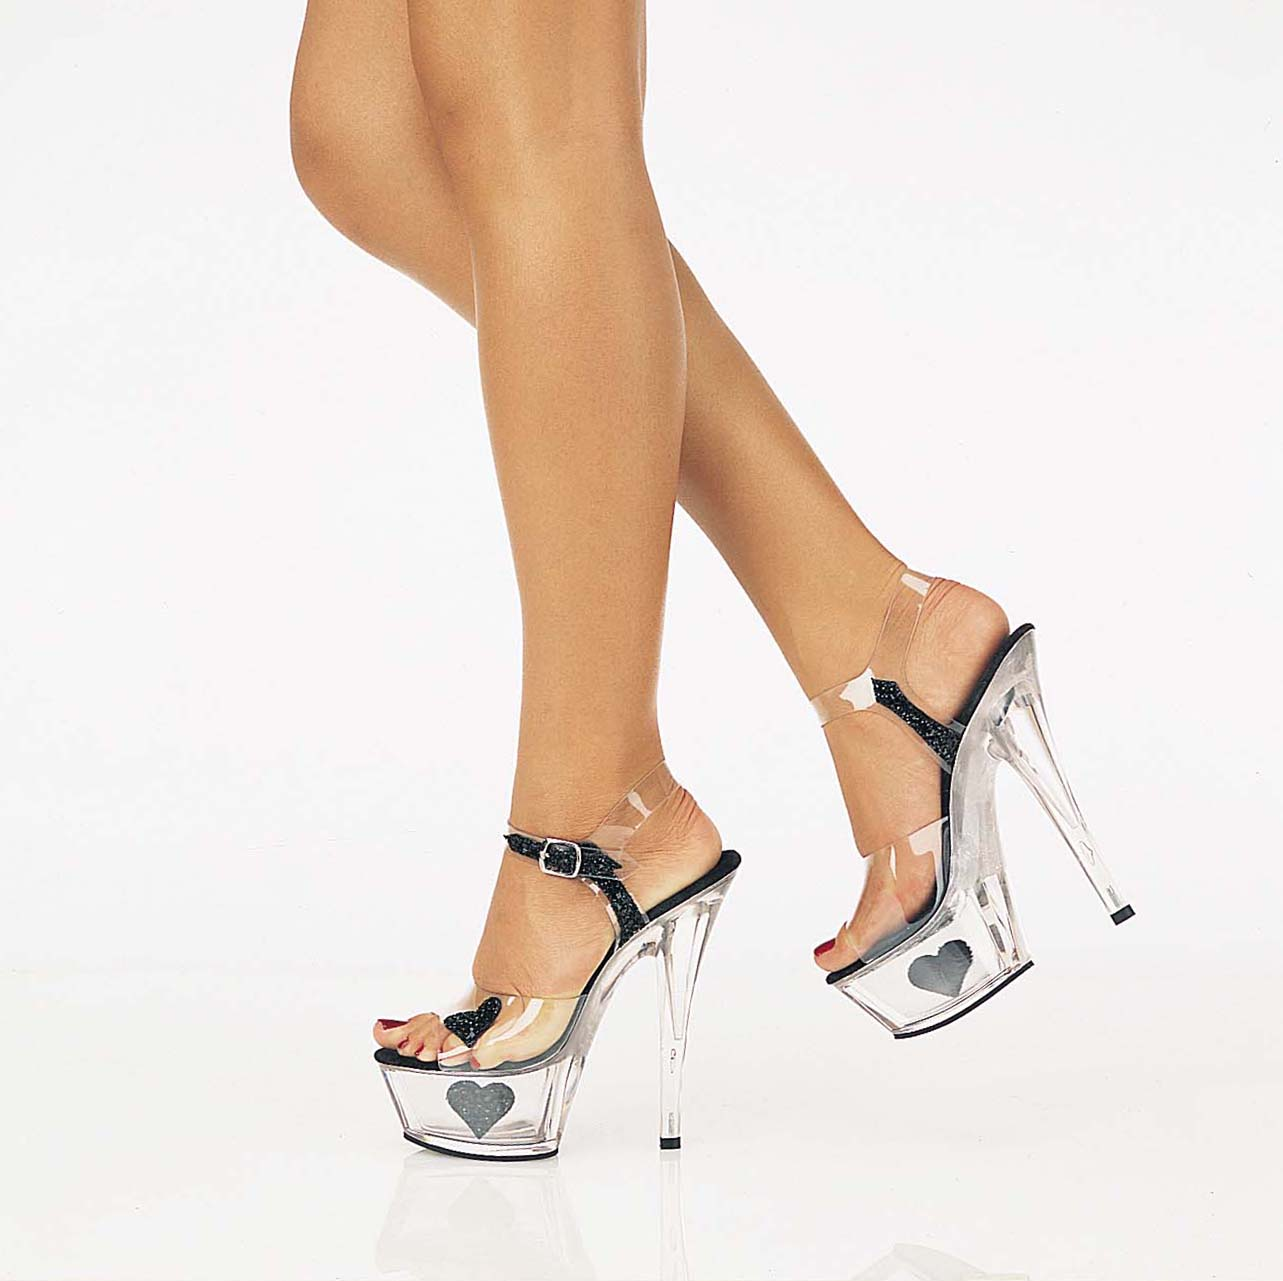 glass slipper High Heel Shoes For Fashion Shoes In Girls